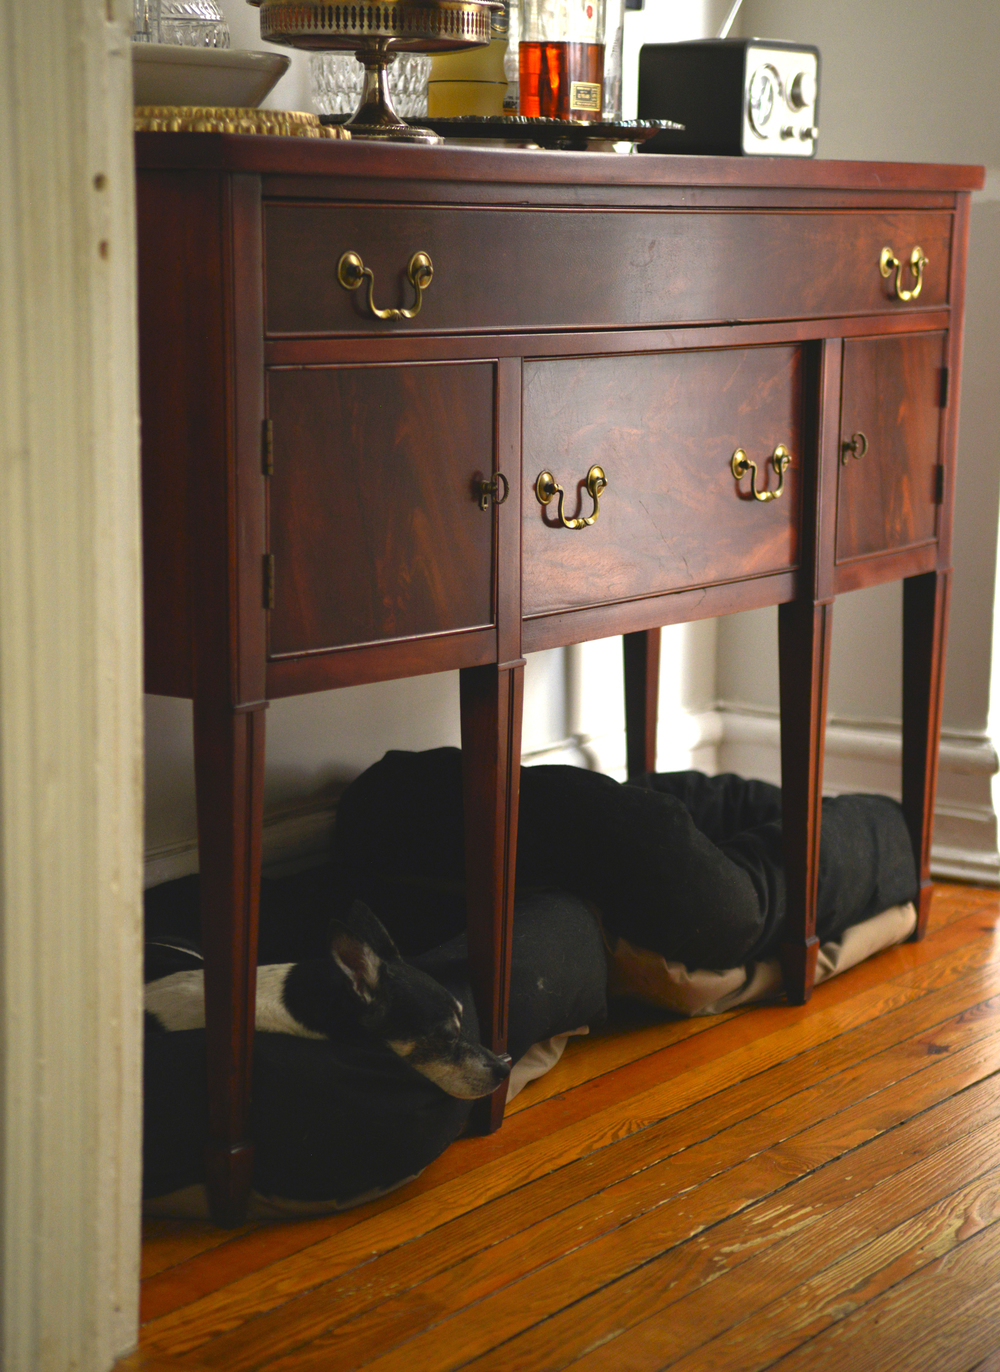 Max napping under the new sideboard. A success!  | Photograph by Lauren L Caron